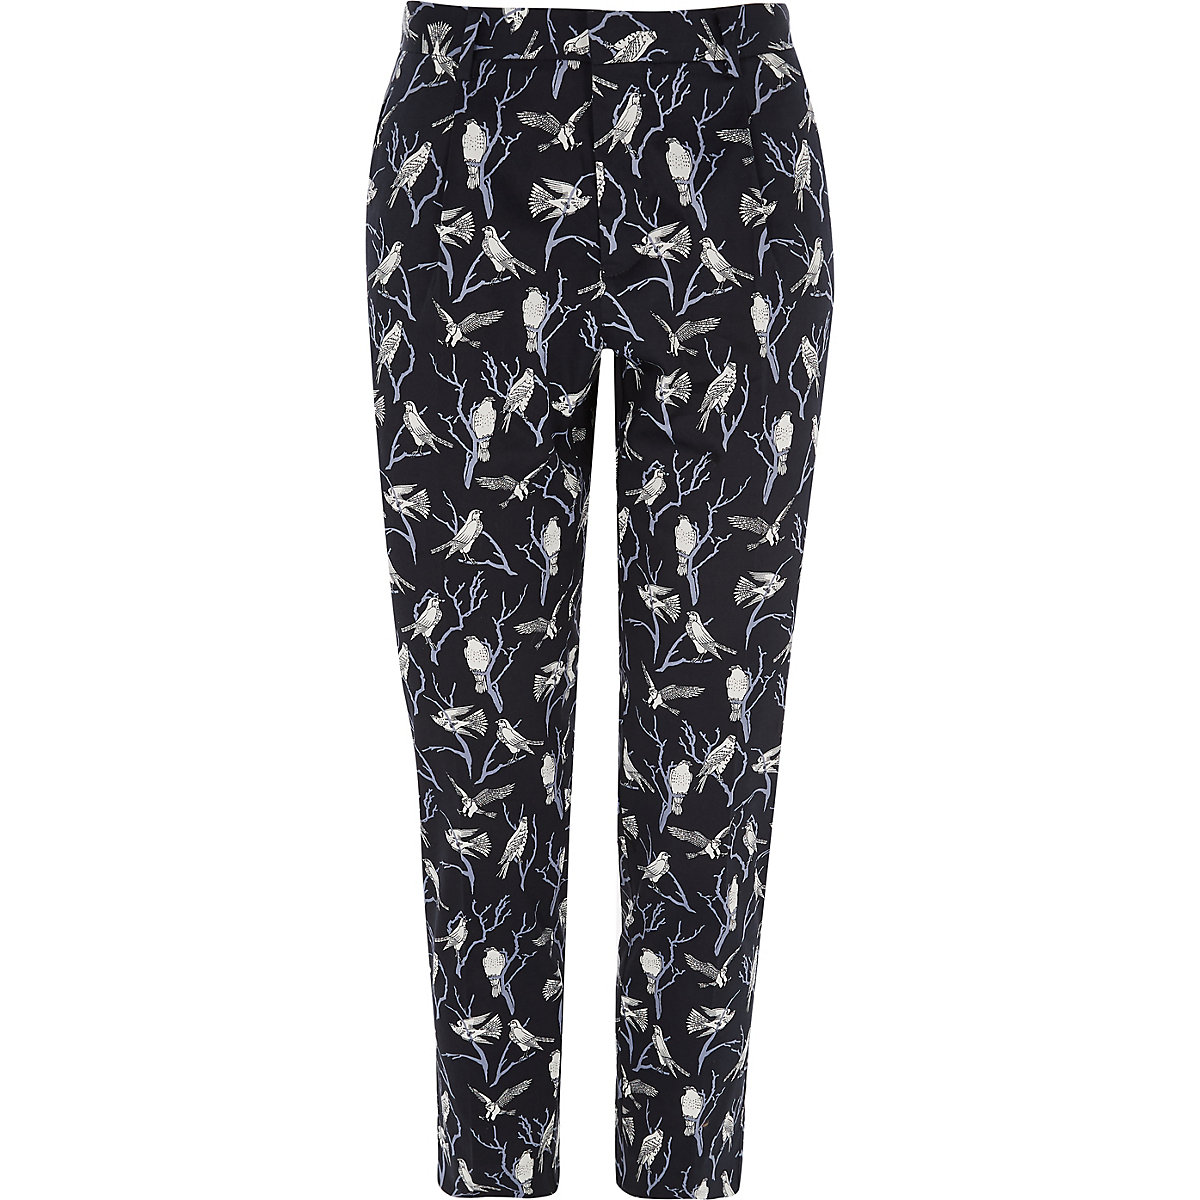 Jack & Jones Premium navy bird print trousers